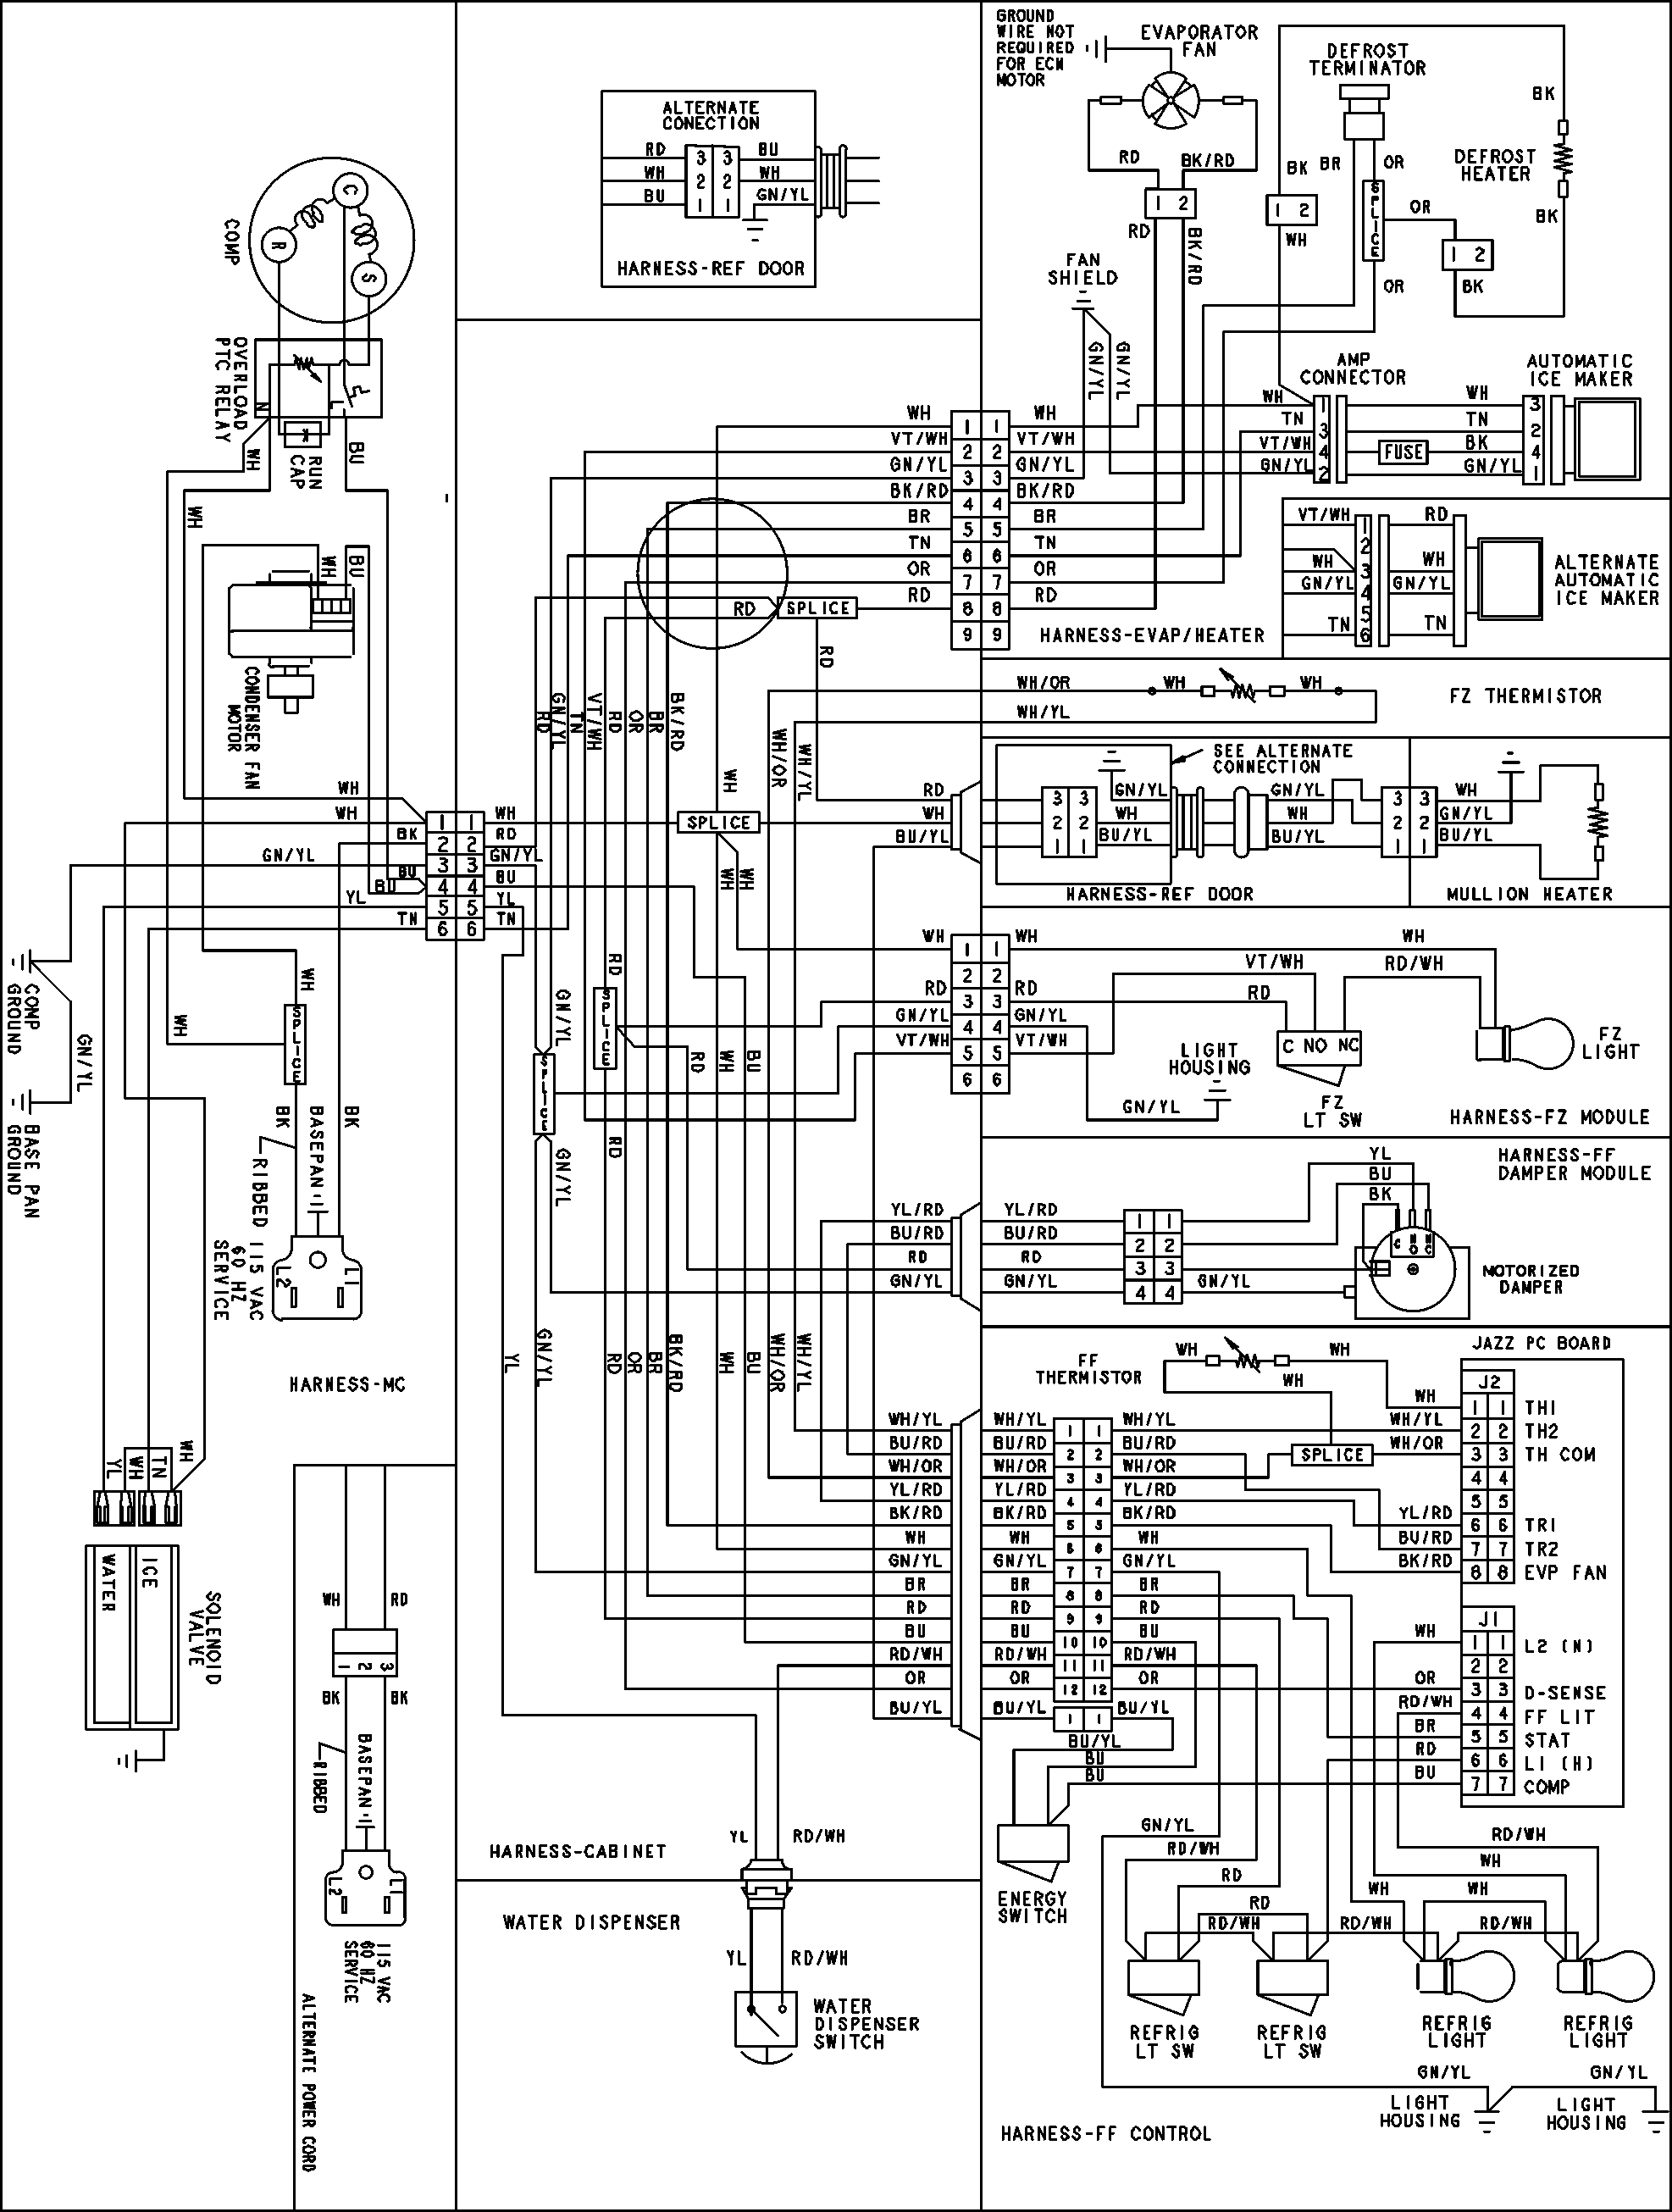 amana ptac wiring diagram Collection-Amana Ptac Wiring Diagram Unique Amana Amana Refrigerator Parts Model Afd2535fes 16-p